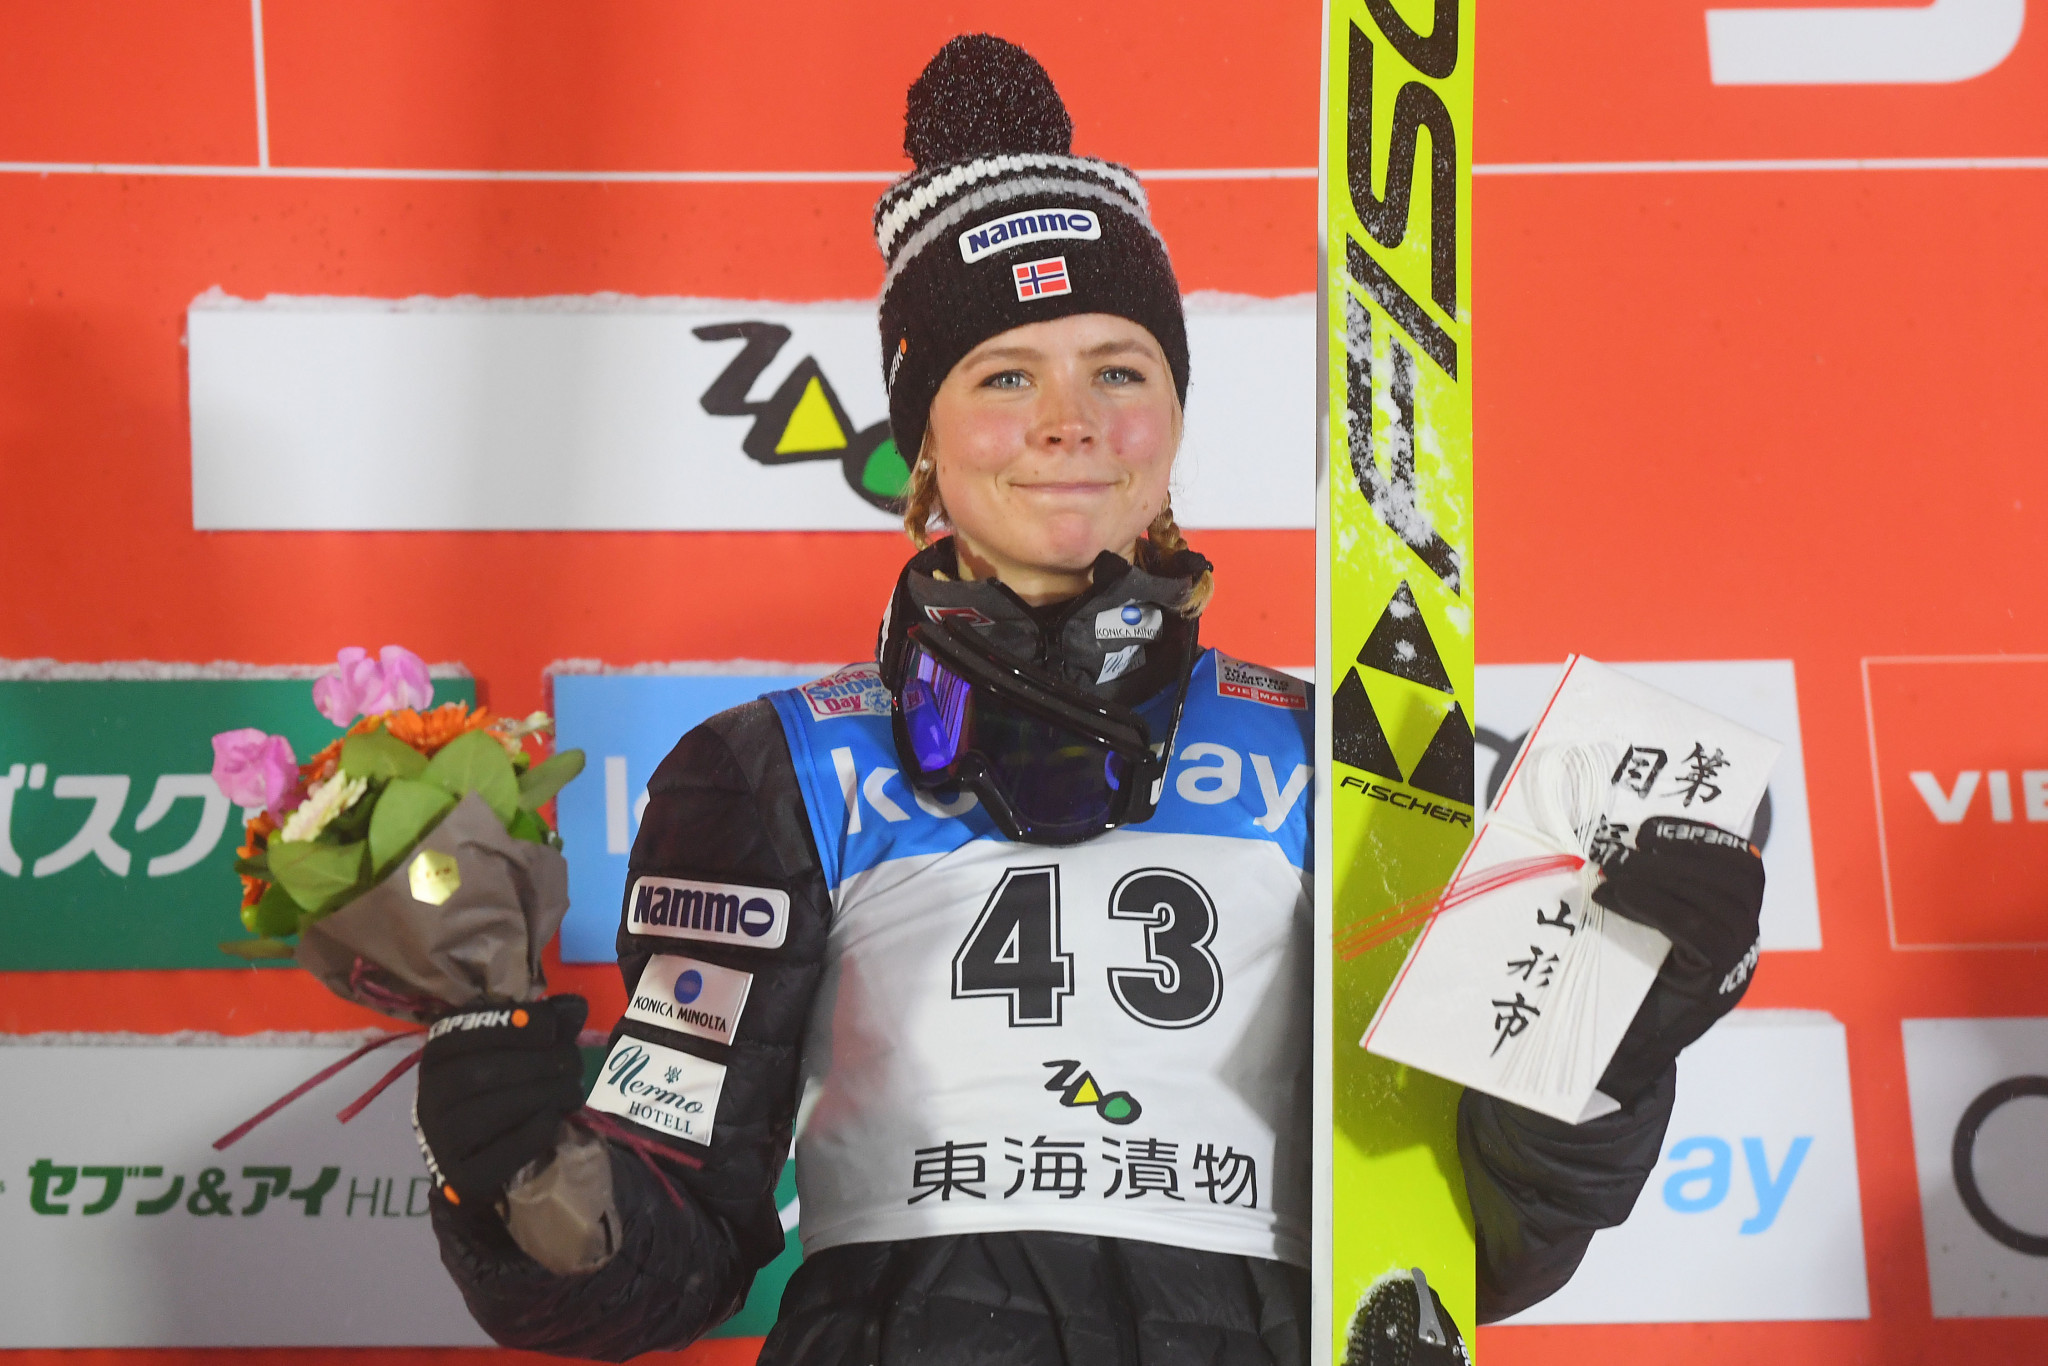 Olympic champion Lundby triumphs at FIS Ski Jumping World Cup event in Zao